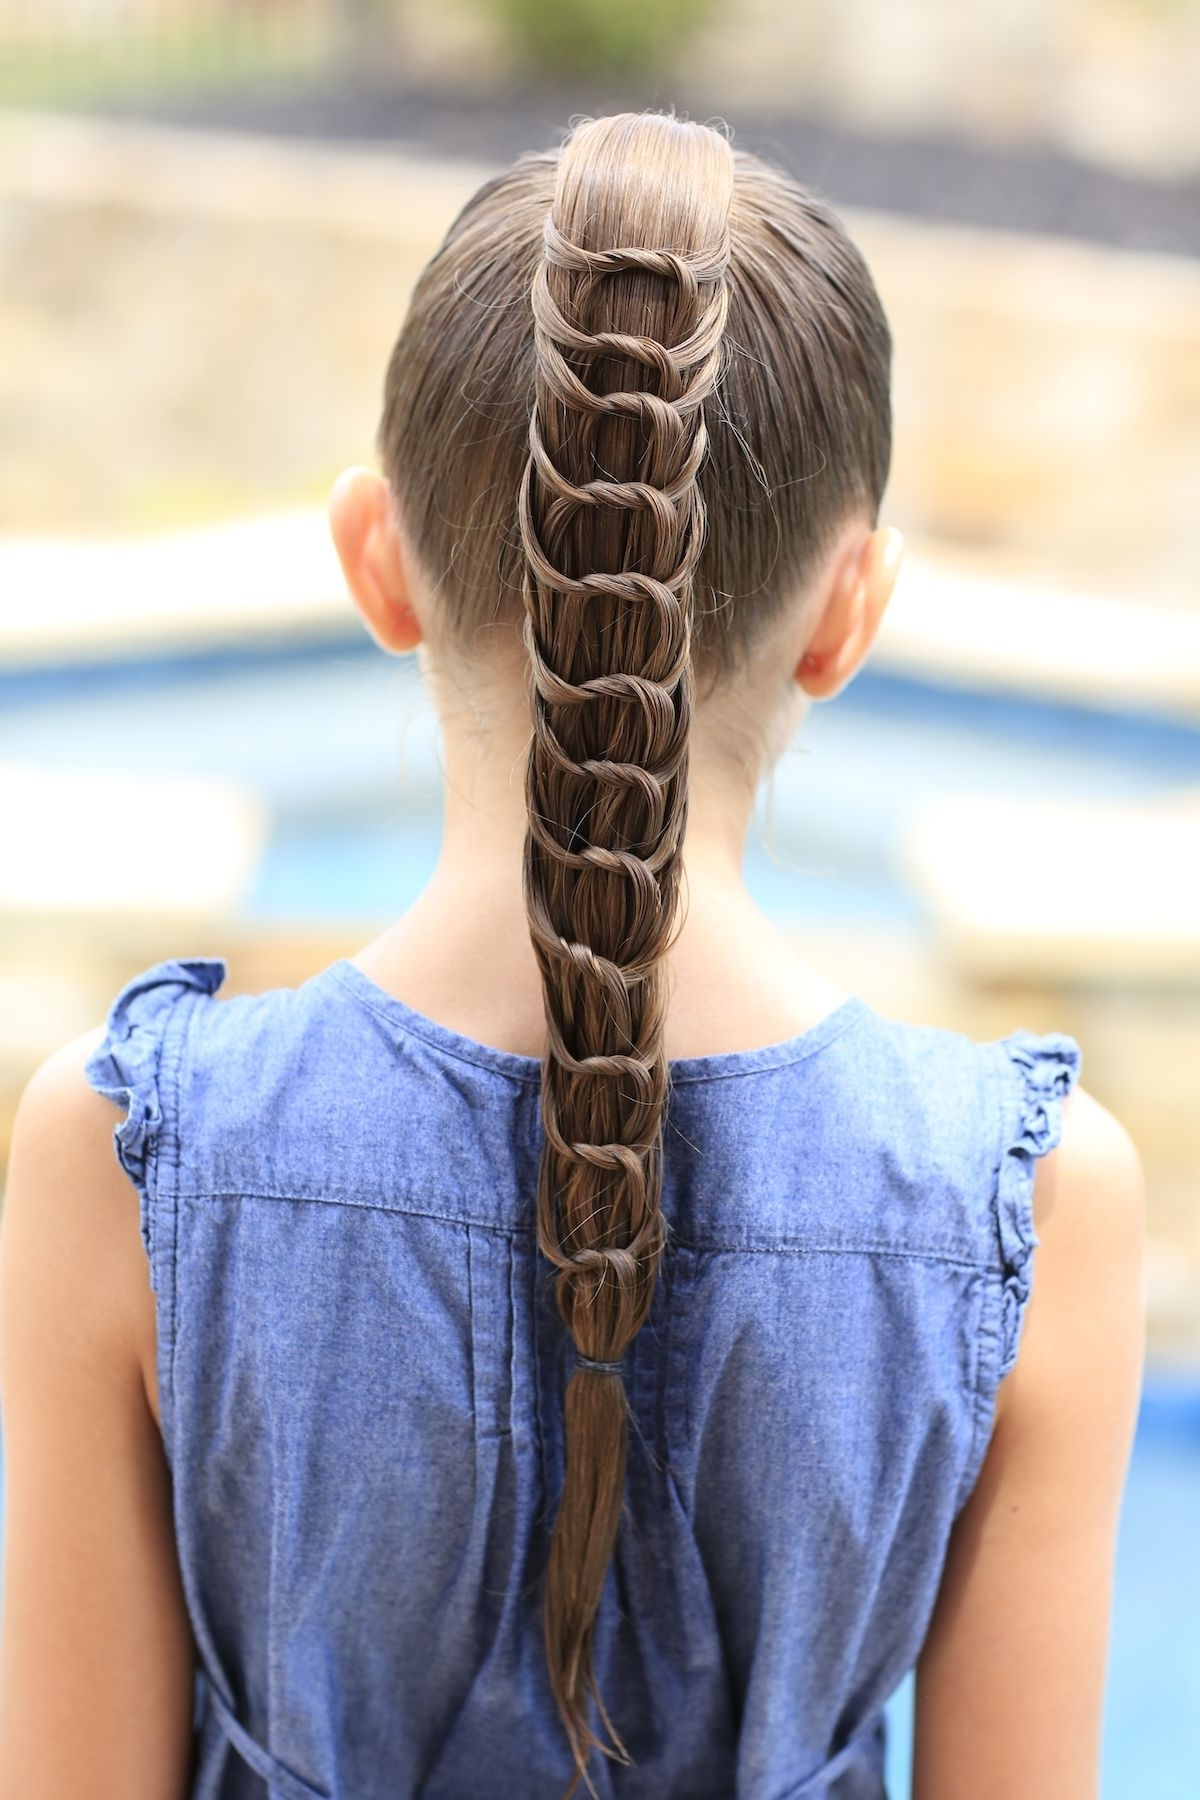 Best And Newest Knotted Ponytail Hairstyles In The Knotted Ponytail Hairstyle! So Cute! #cutegirlshairstyles (View 7 of 20)